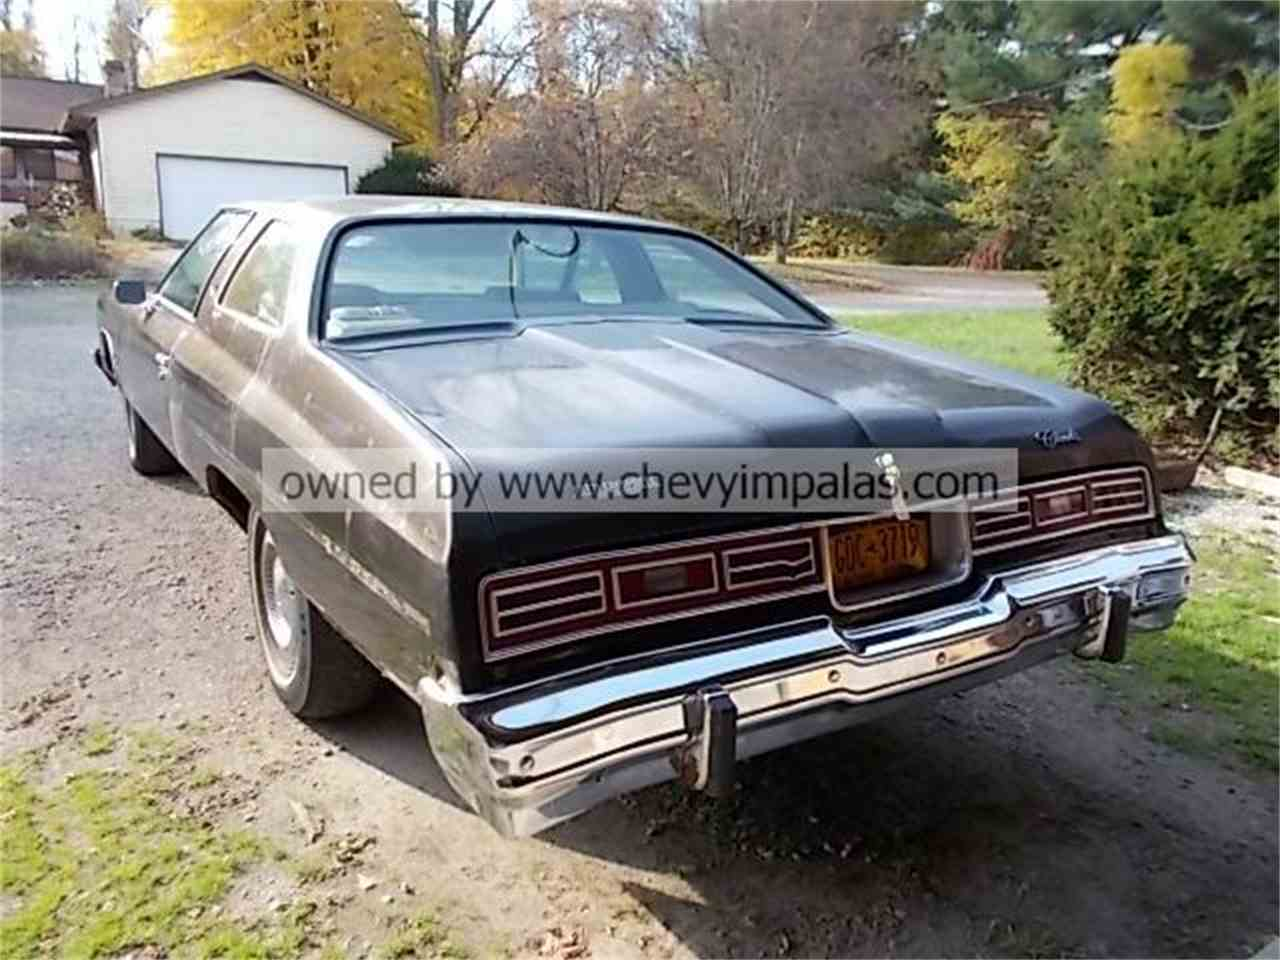 Large Picture of '75 Chevrolet Impala - $4,500.00 Offered by ChevyImpalas.Com - JPVU